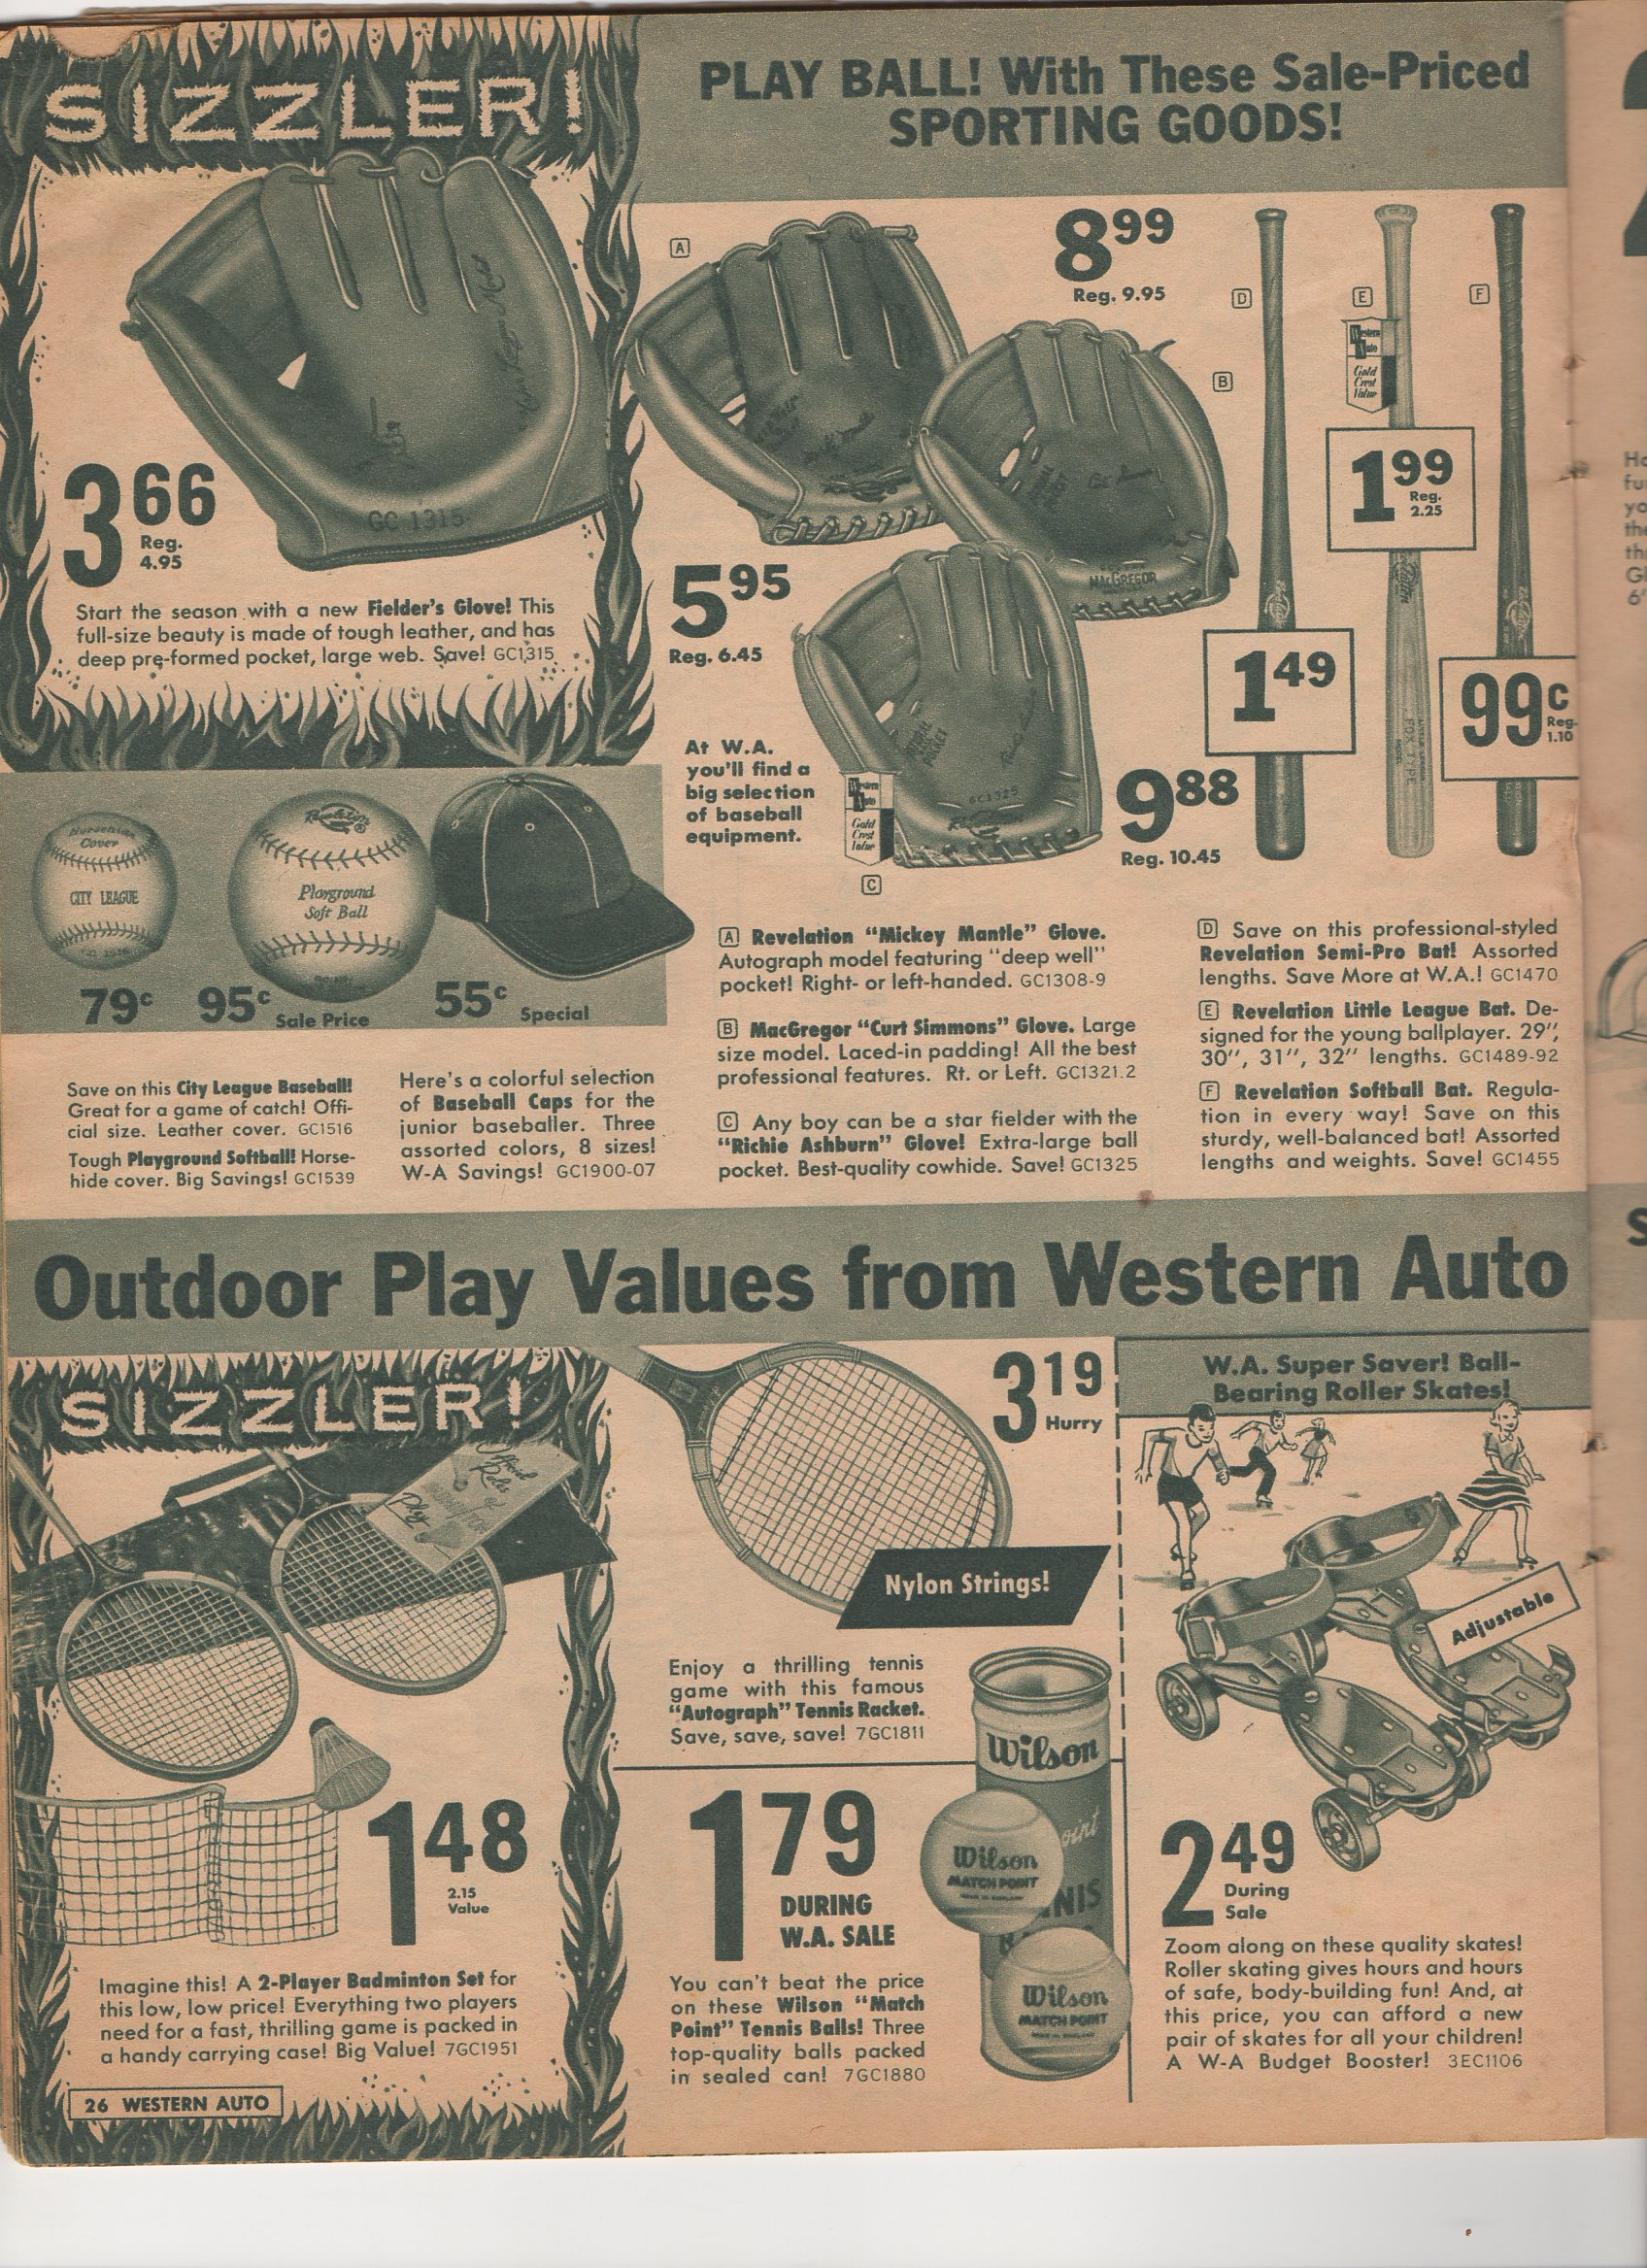 1961 western auto, 52nd anniversary, sale catalog